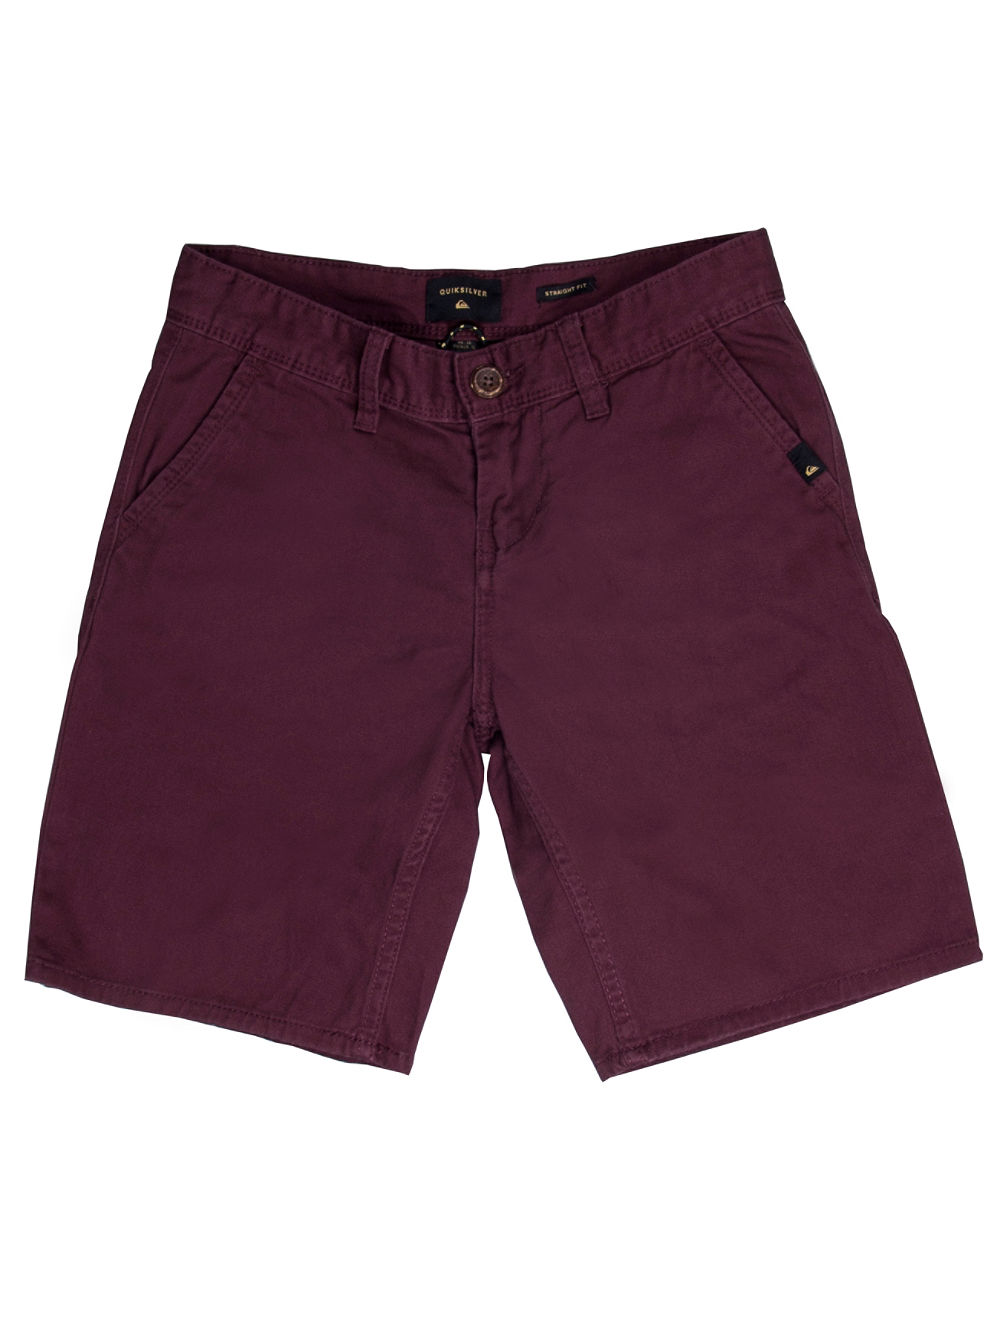 Everyday Chino Light Shorts Boys